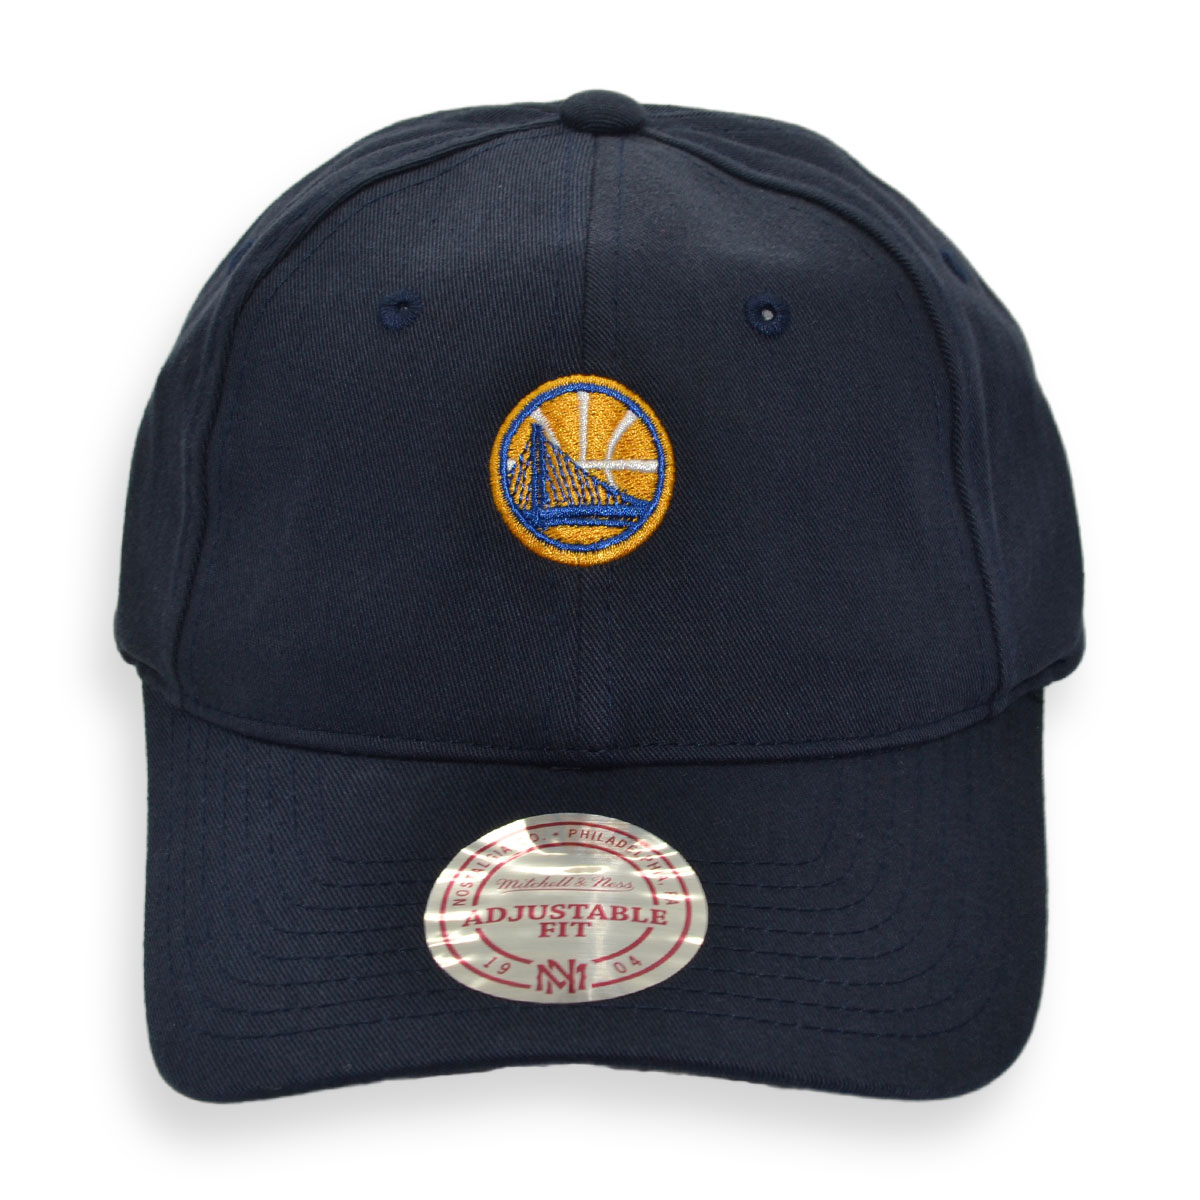 d5f7d3c2518 MITCHELL   NESS GOLDEN STATE WARRIORS WASHED COTTON STRAPBACK CAP ...